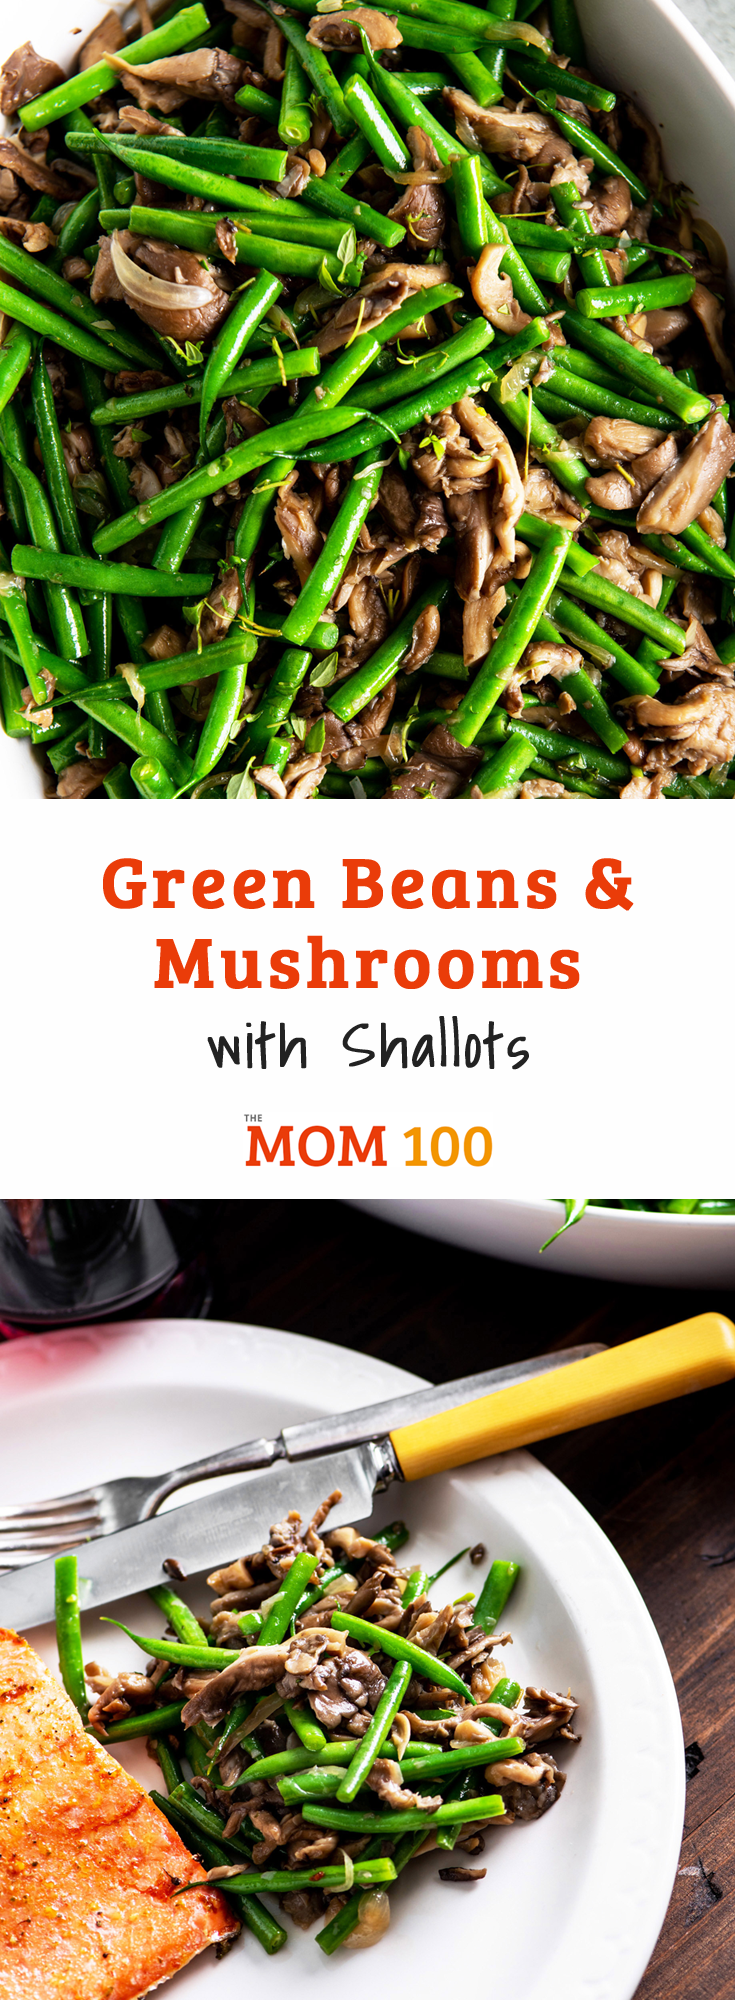 Green Beans and Mushrooms with Shallots: This classic, simple and delicious side dish belong on pretty much any holiday table.